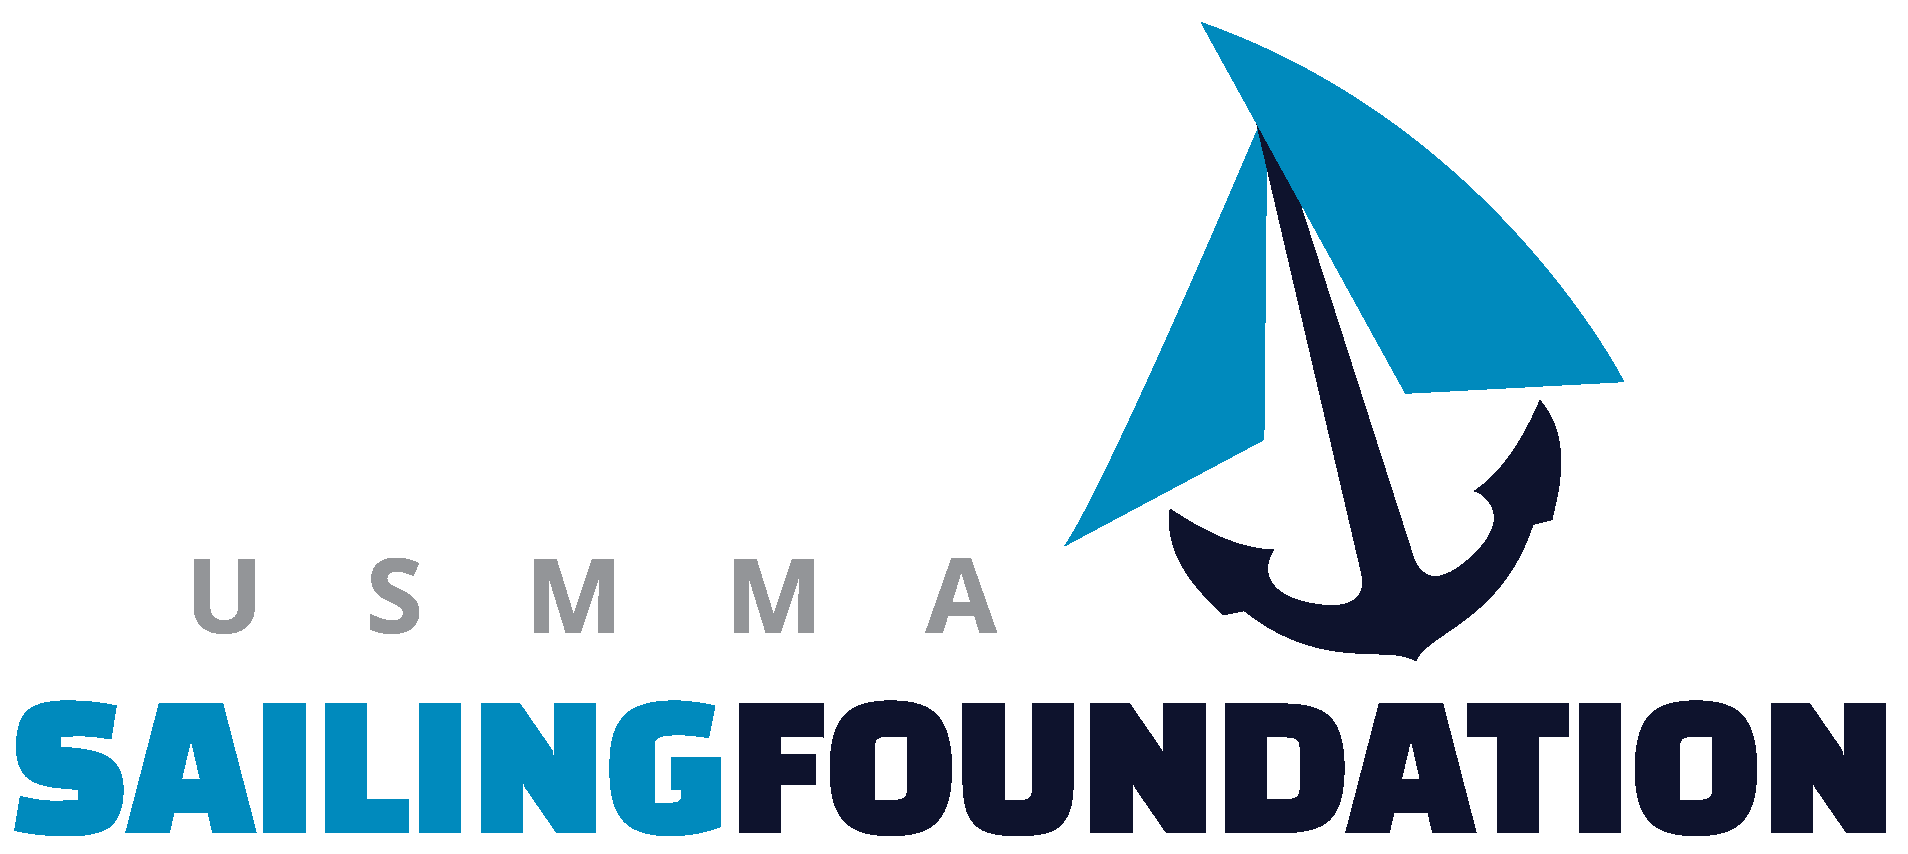 USMMA Sailing Foundation